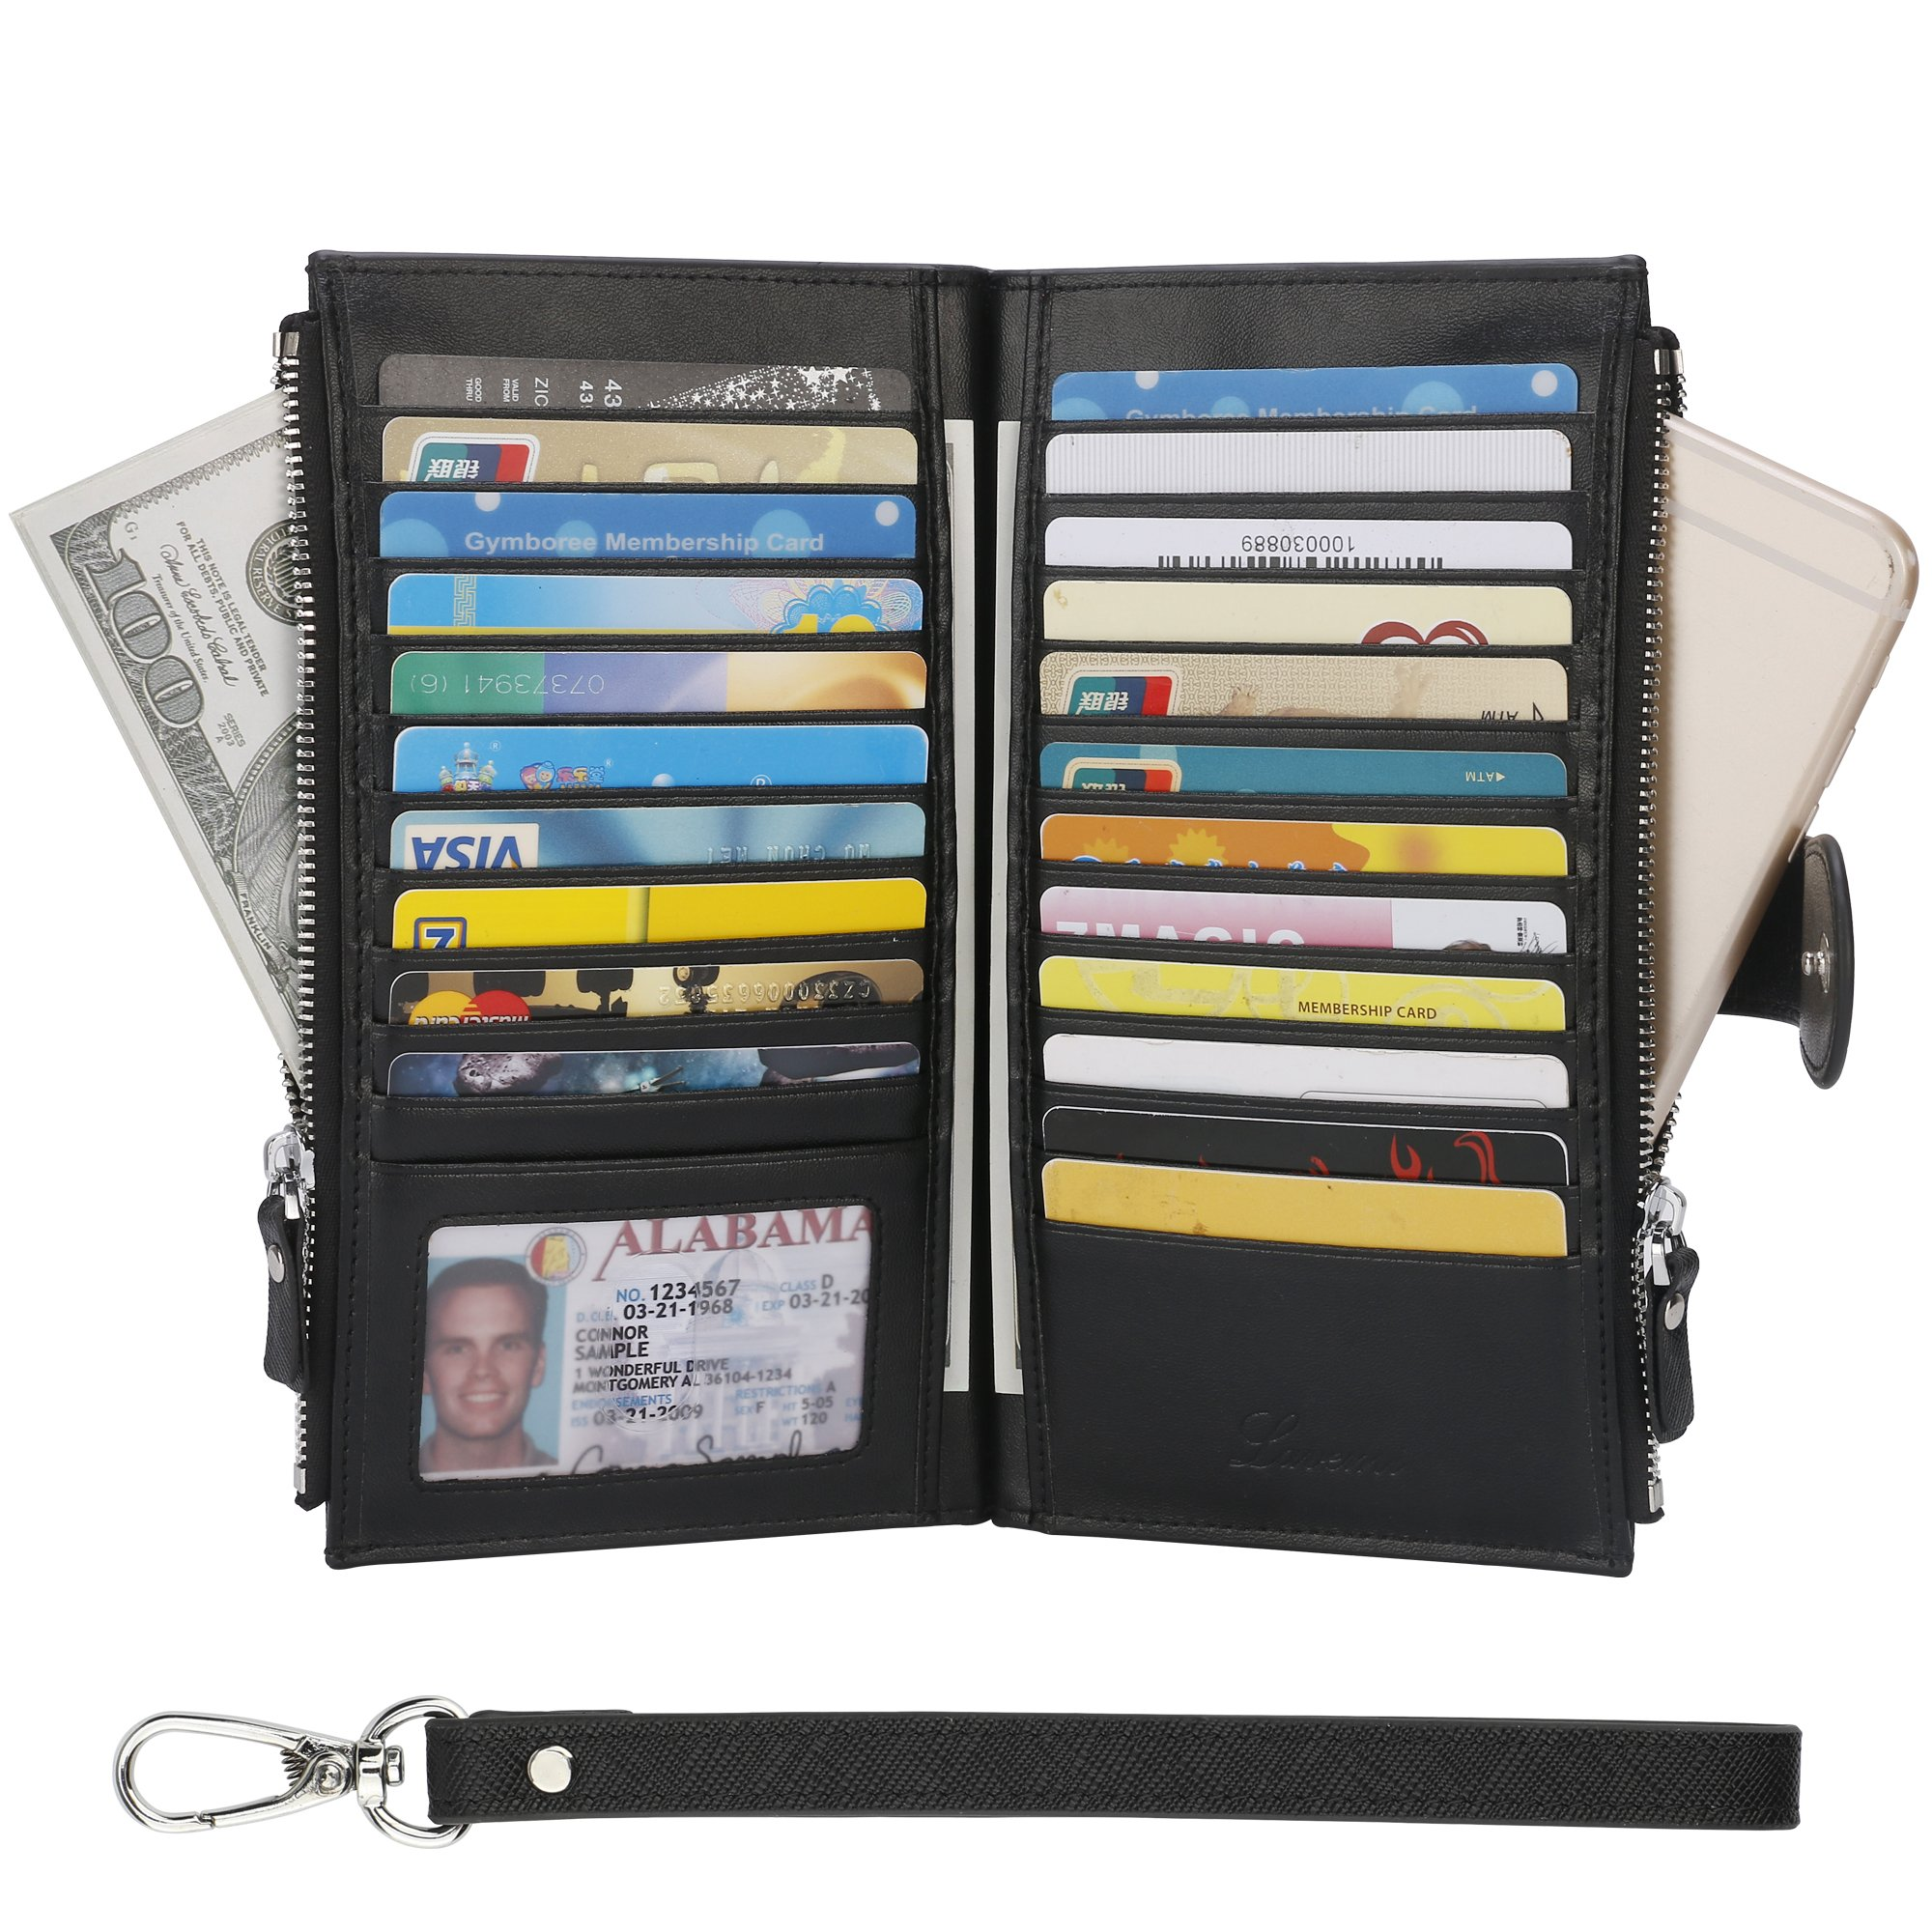 Wallet for Women- Womens RFID Blocking Genuine Leather Bifold Multi Card Case Wallet with Zipper Pockets(Black)